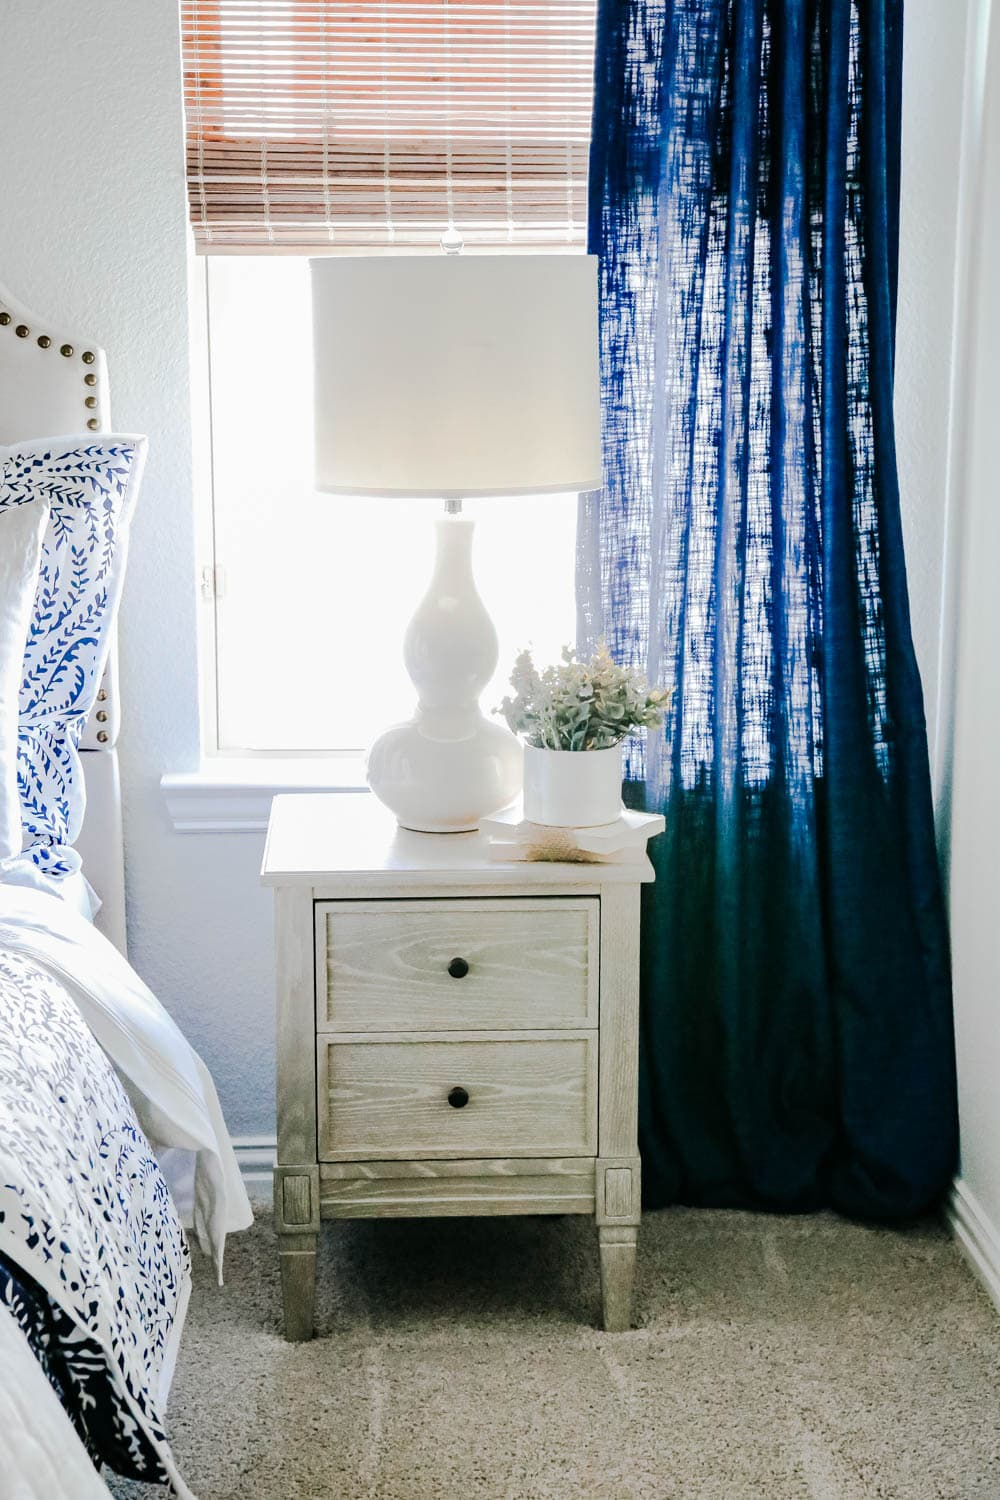 Use table lamps next to the bed to make the guest room feel cozy. #ABlissfulNest #guestroom #bedroomdecor